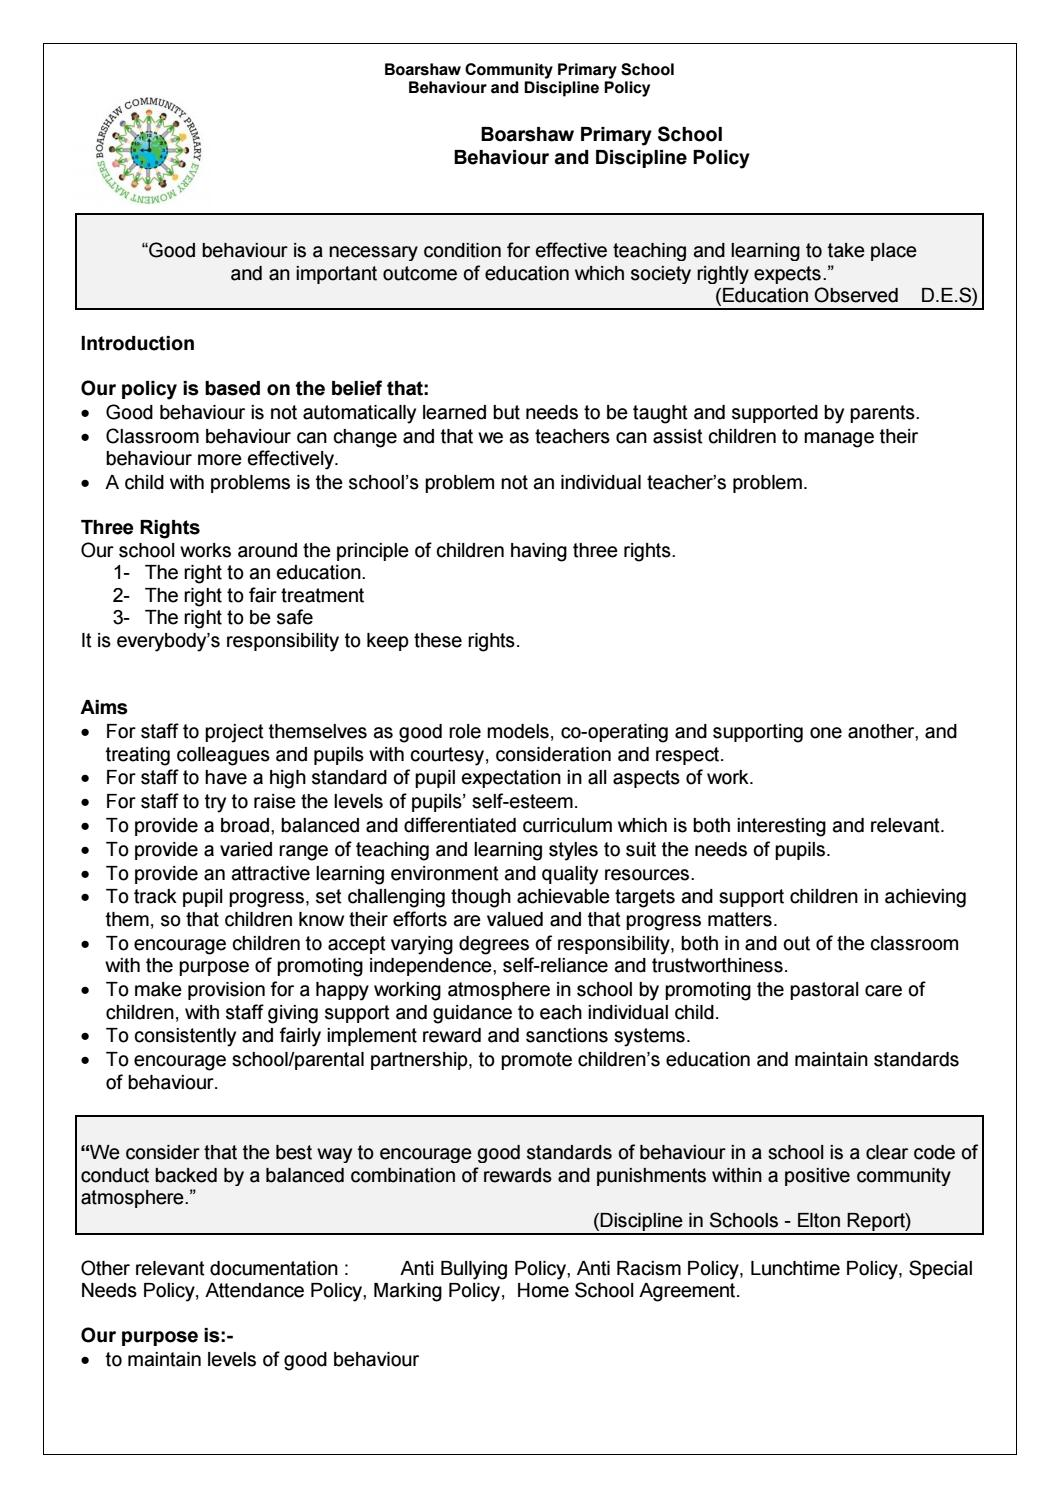 Home school agreement model policy